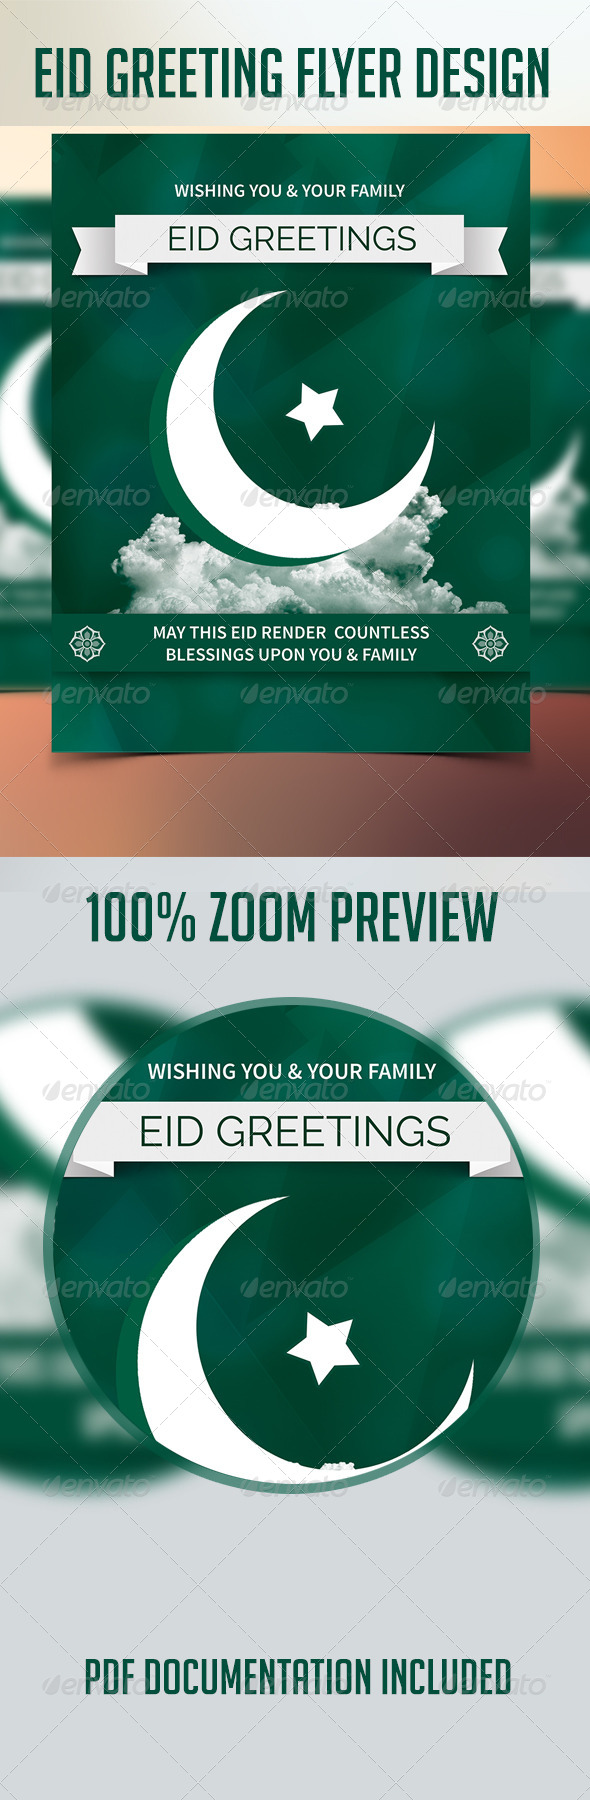 GraphicRiver Eid Greeting Flyer Design 8392385